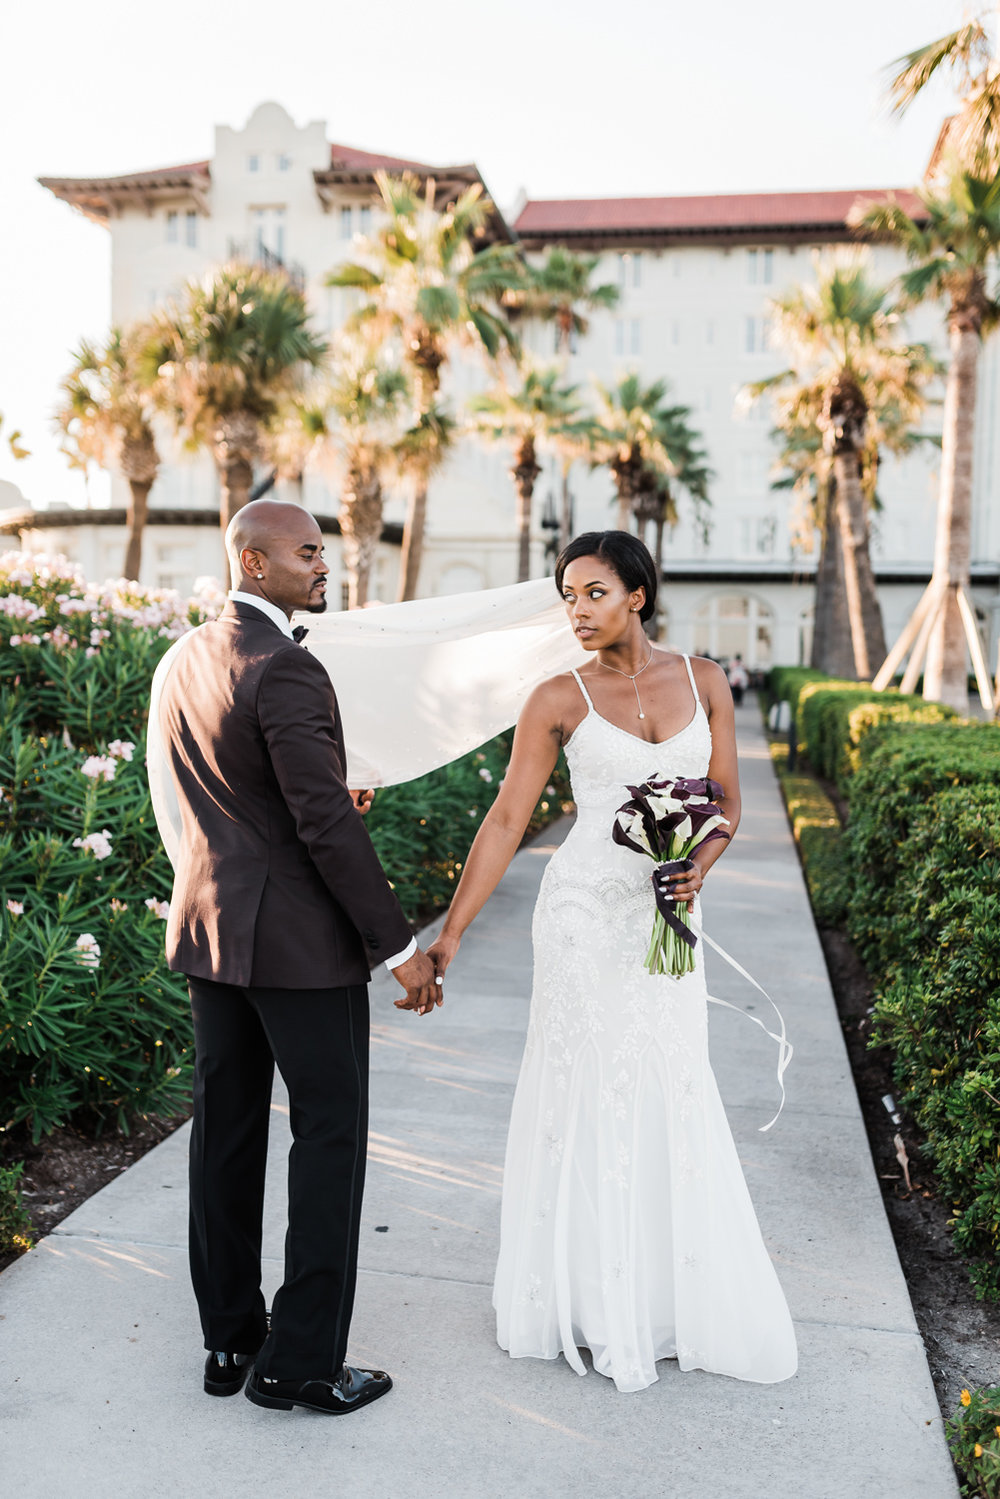 Sweet Nest Photography - Houston Wedding Photographer - Hotel Galvez Wedding - Beach wedding.jpg